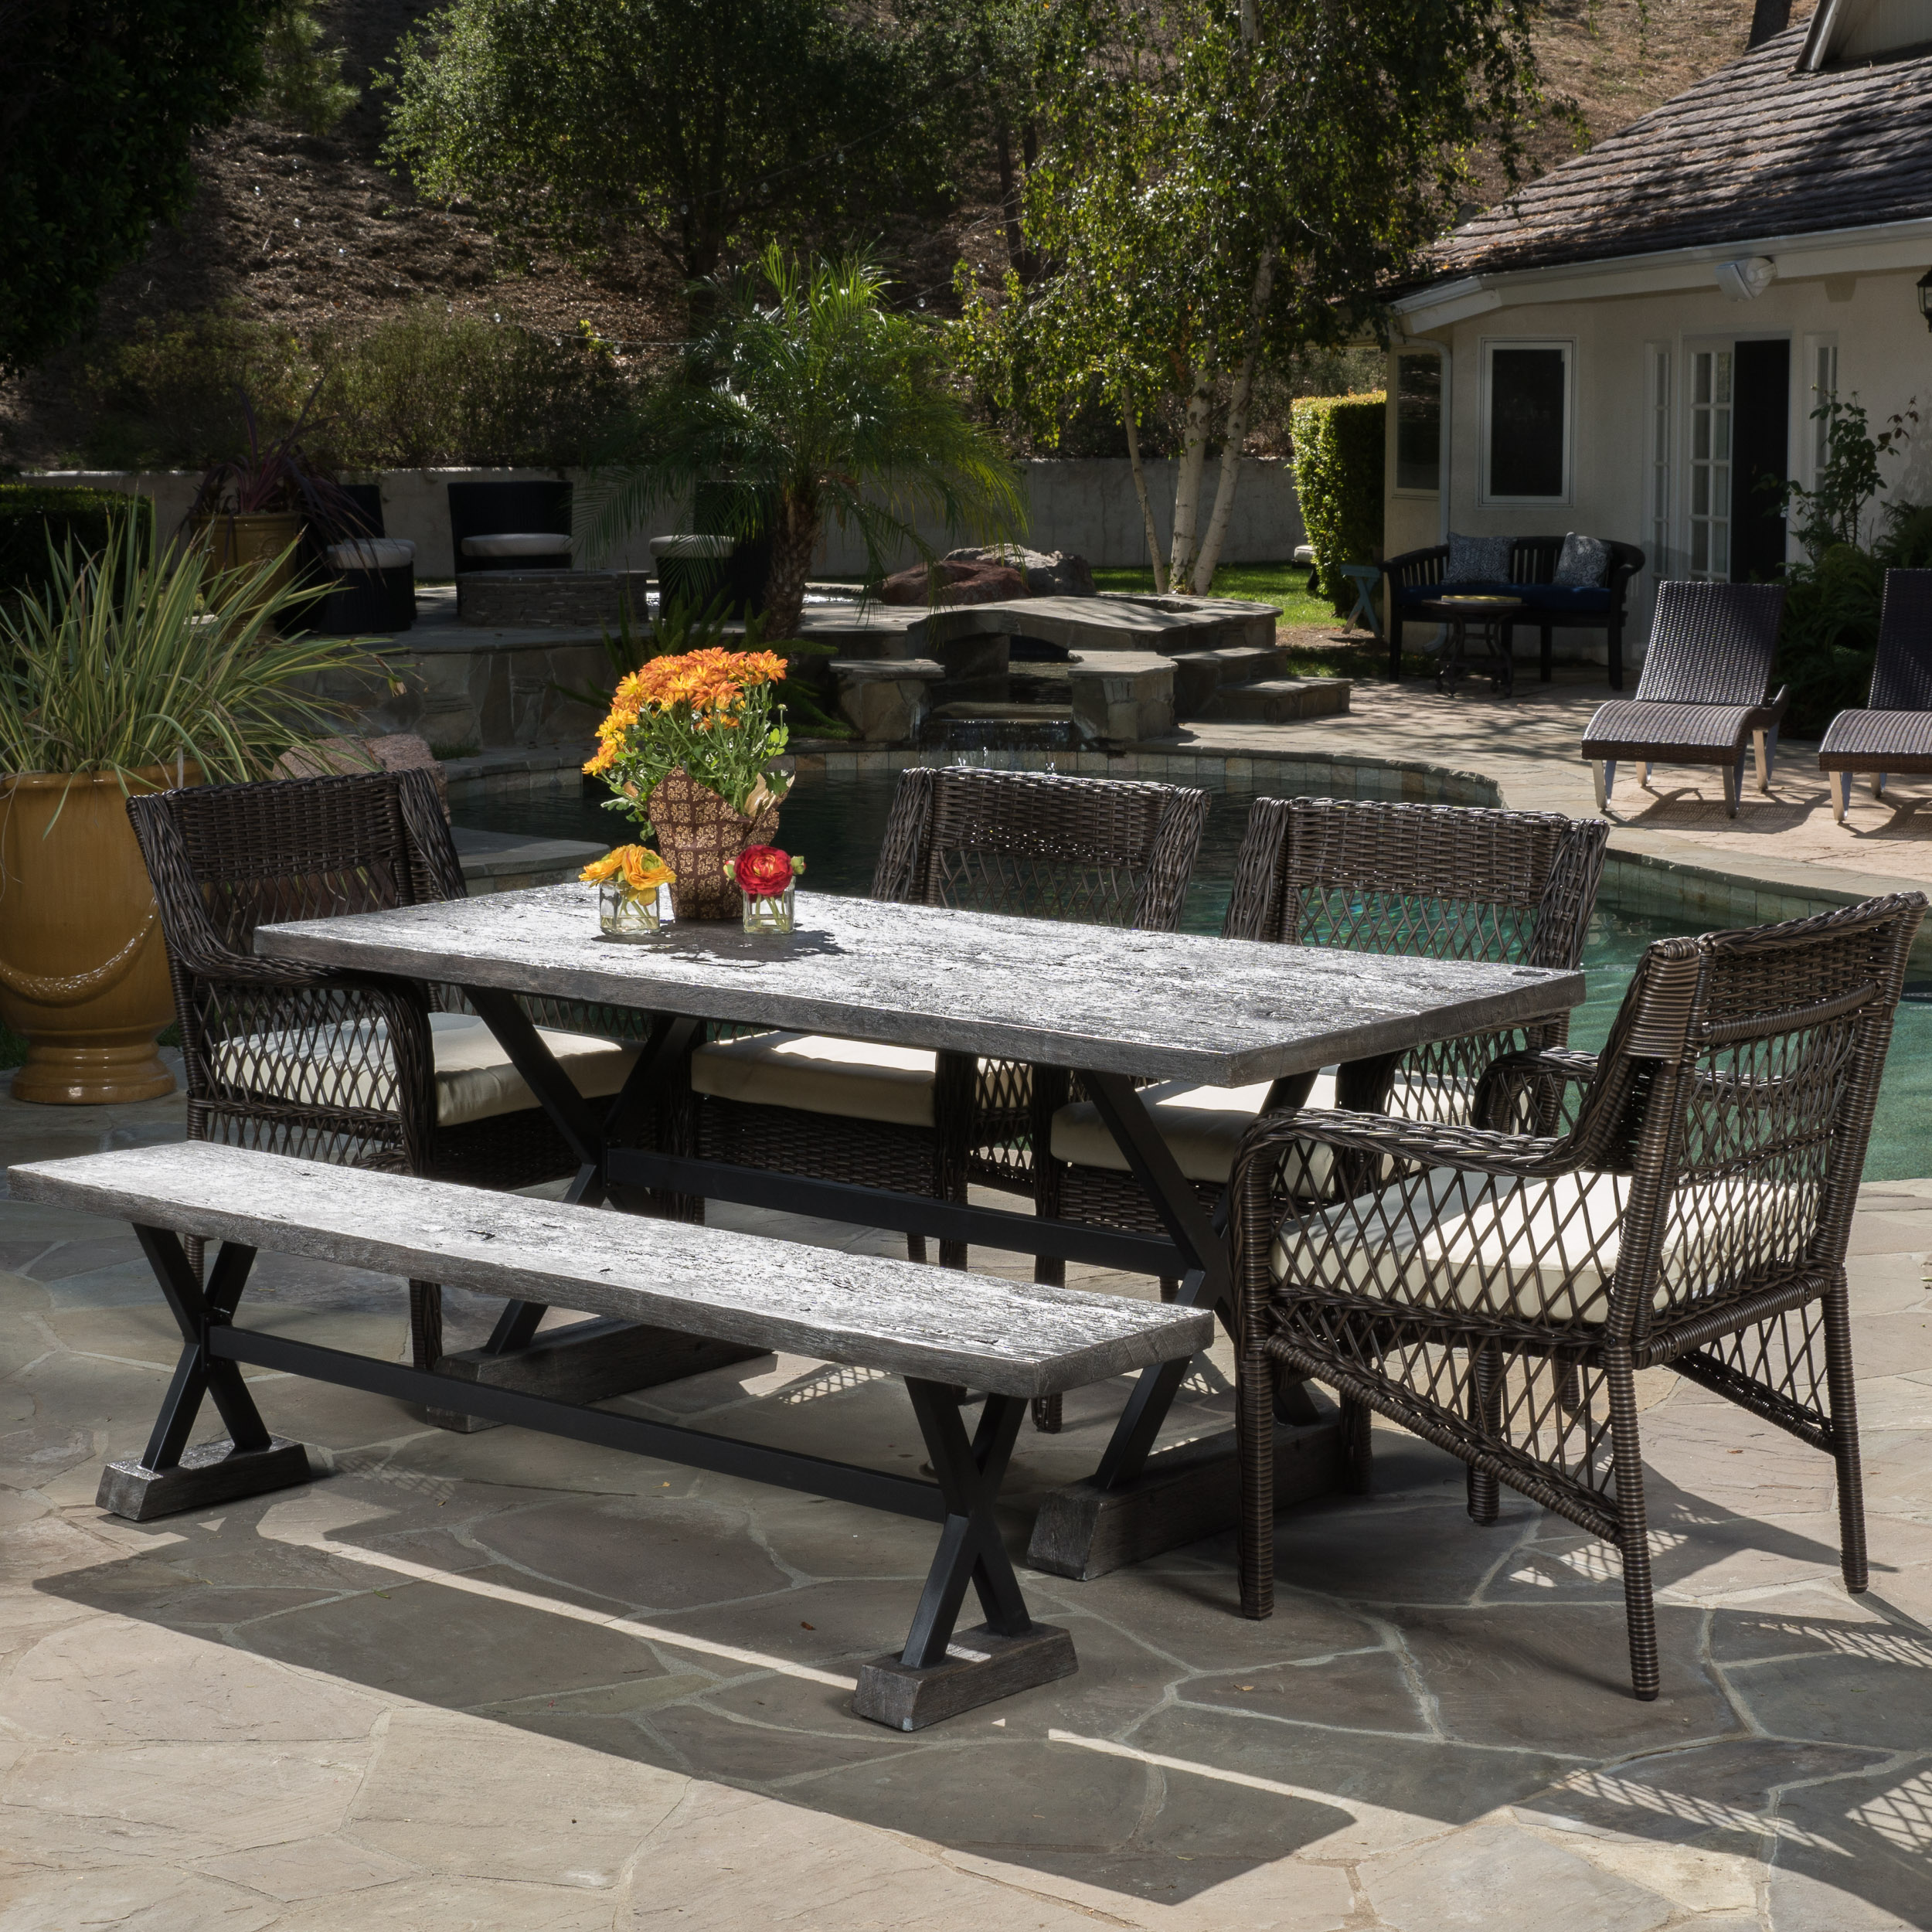 Soto 6 Piece Outdoor Wicker Dining Set with Cushions, Brown